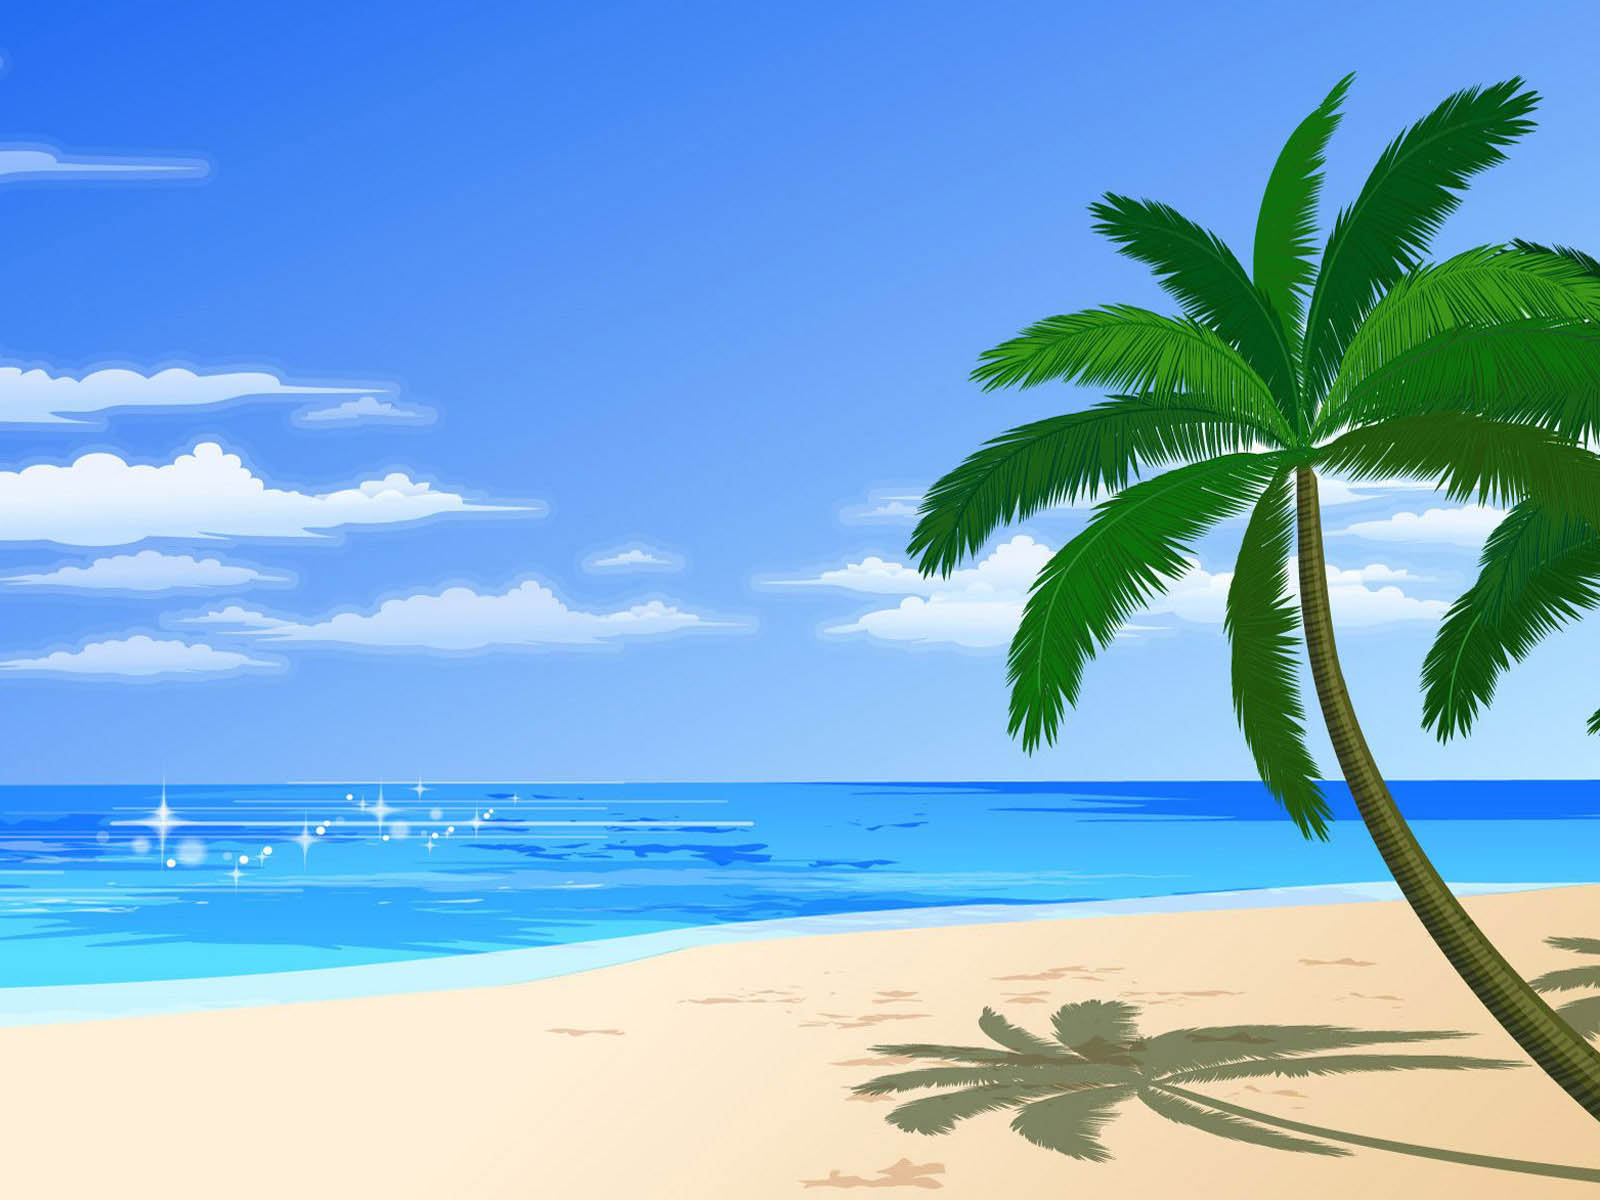 Clipart beach. Clip art cartoon free